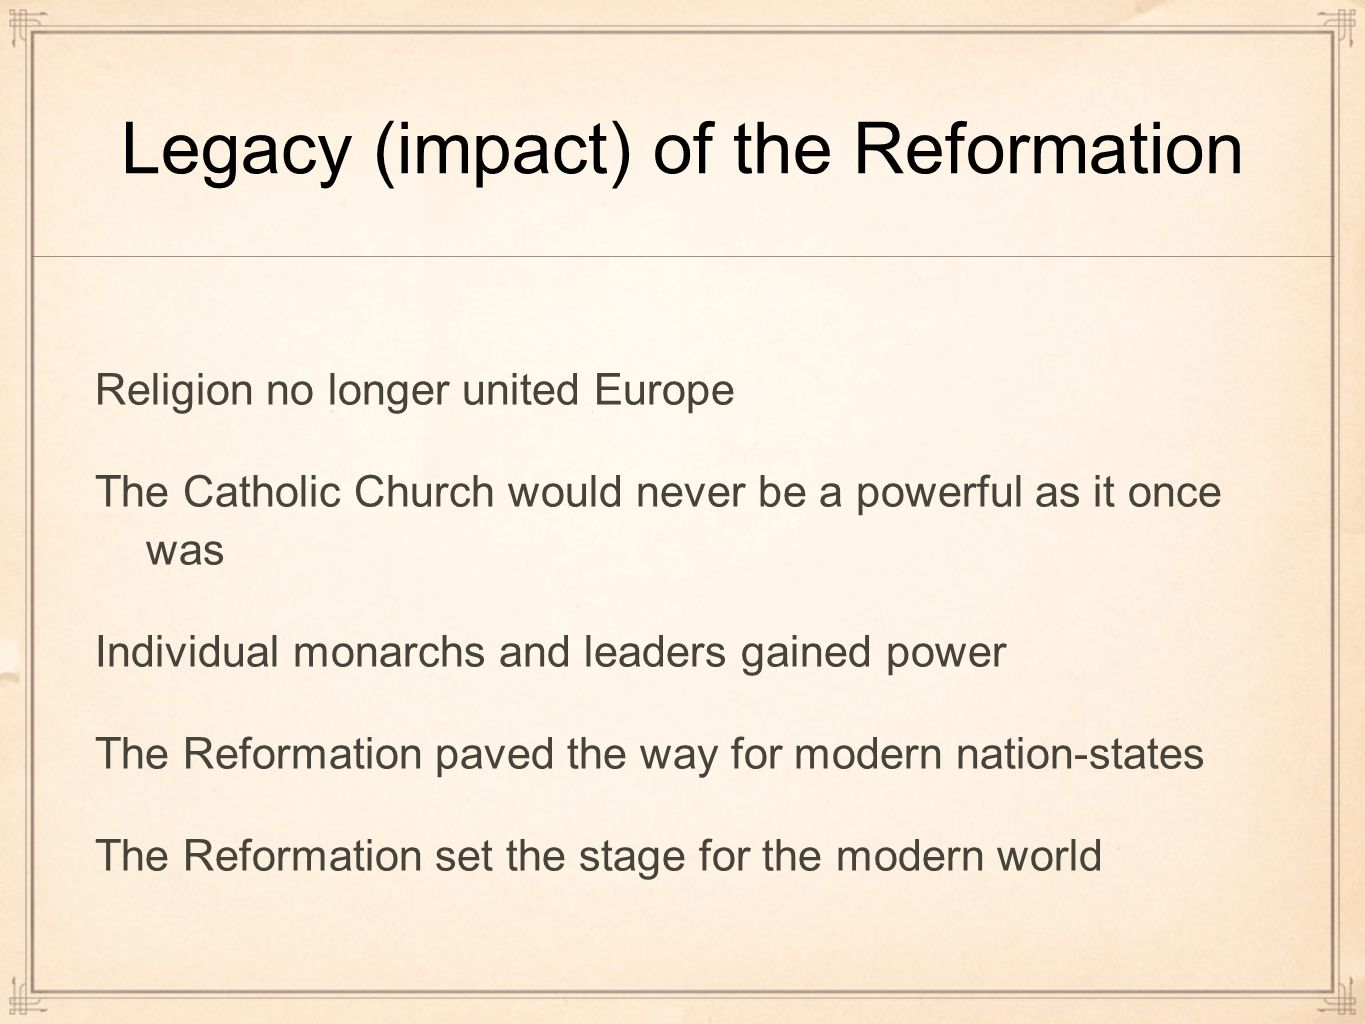 """effects of the reformation According to the newspaper, """"the phenomenal effect"""" of the ninety-five theses """" quickly spread throughout the country luther probably became famous because the theses critical of the church were printed on a leaflet that was in circulation"""" time expounded on the widespread impact of the reformation."""